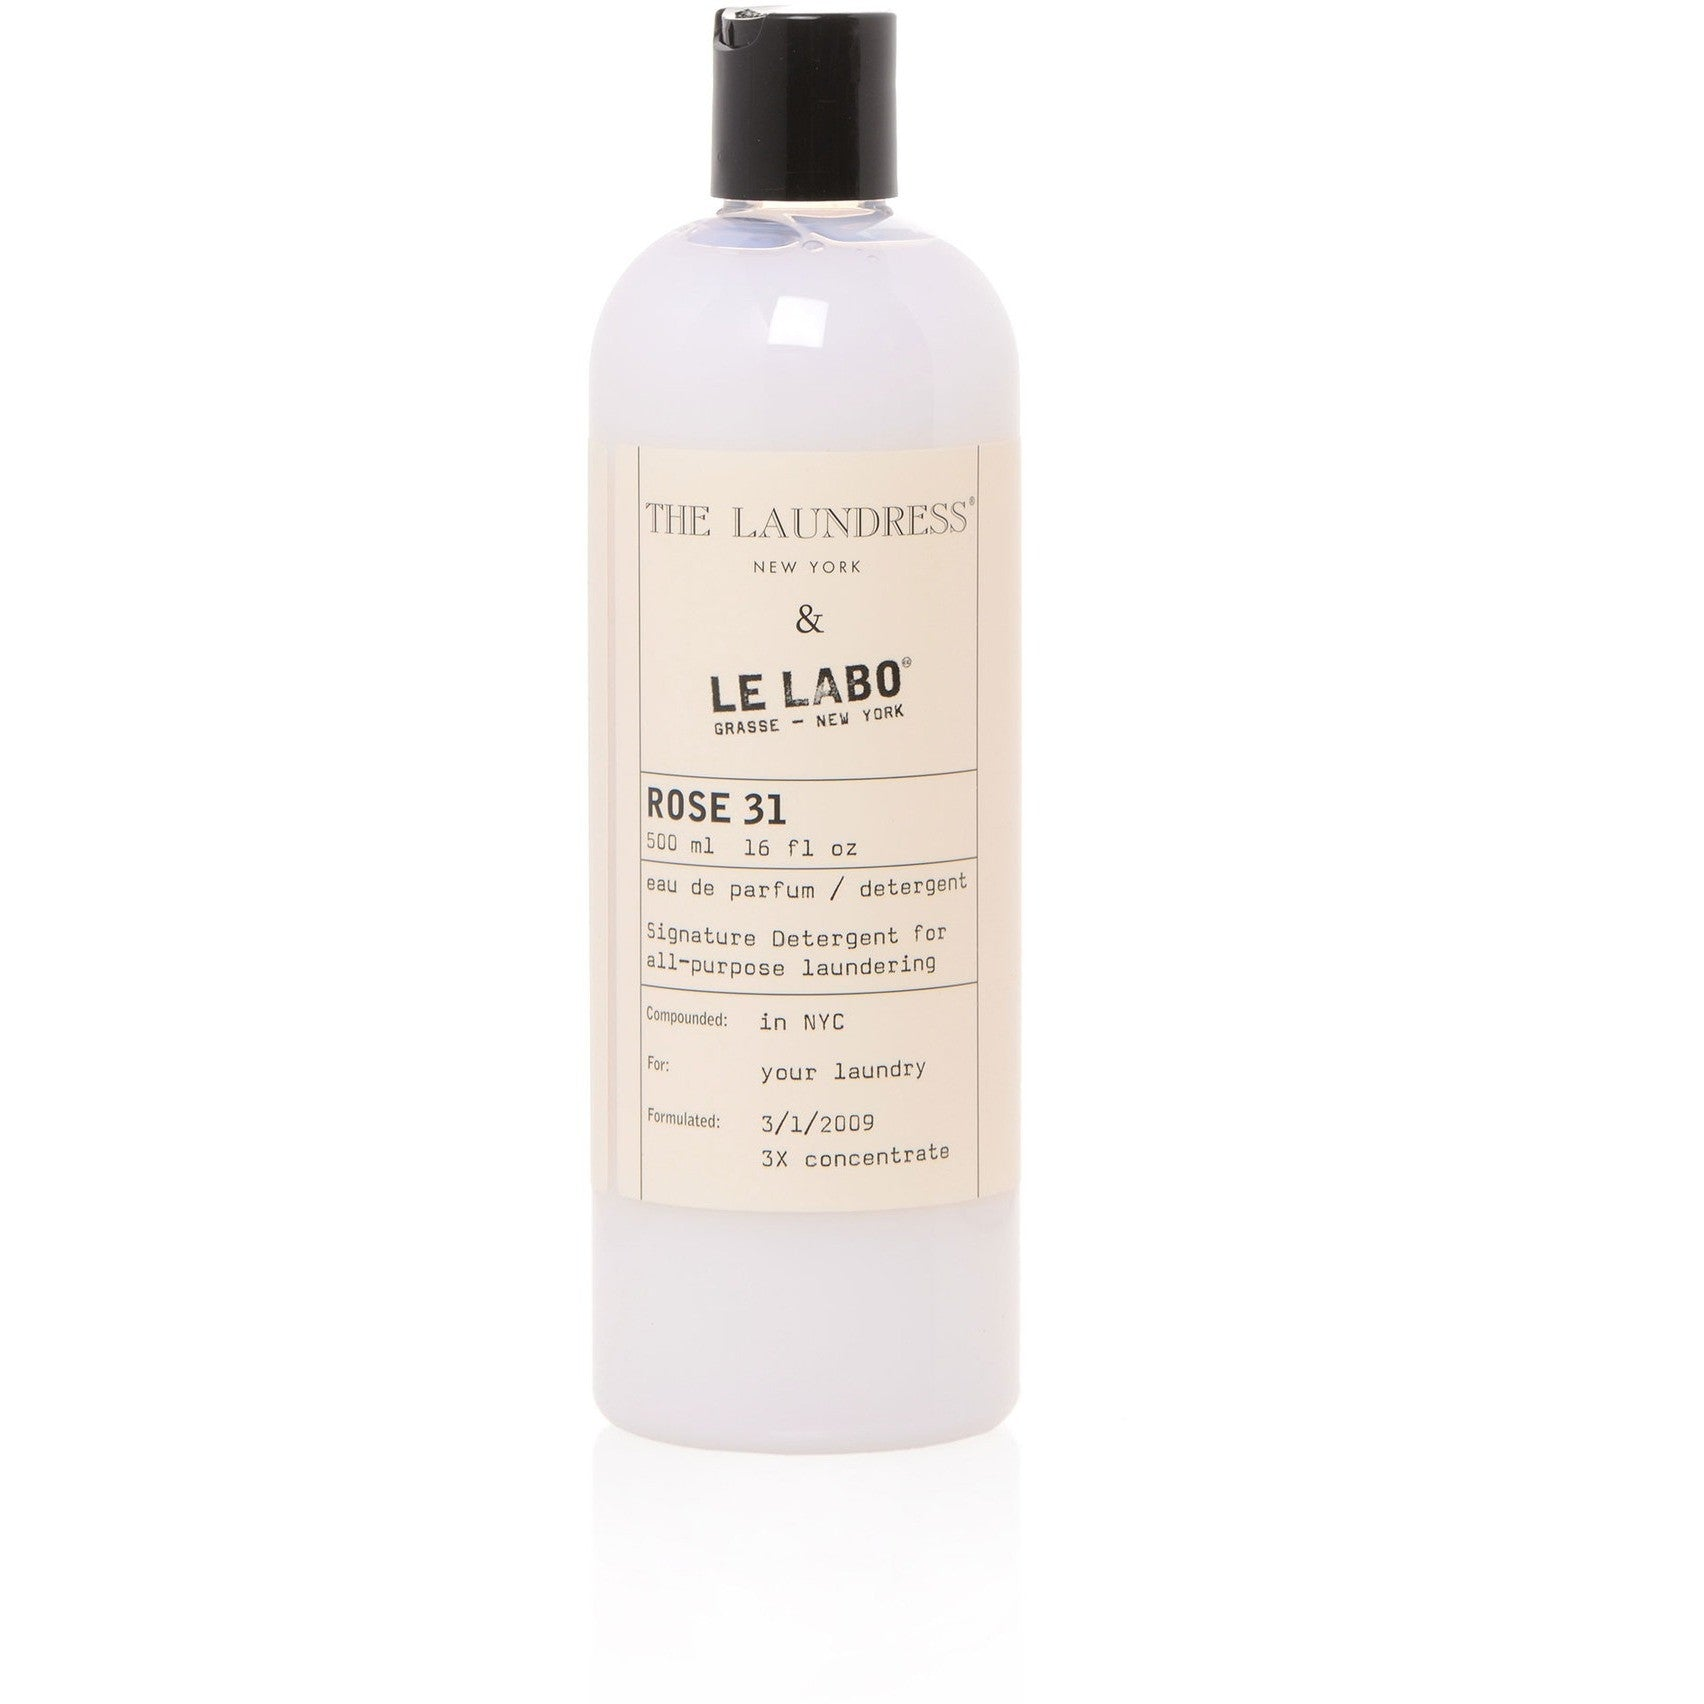 the laundress | le labo rose 31, signature detergent[product_type ]the laundress - Kiss and Makeup